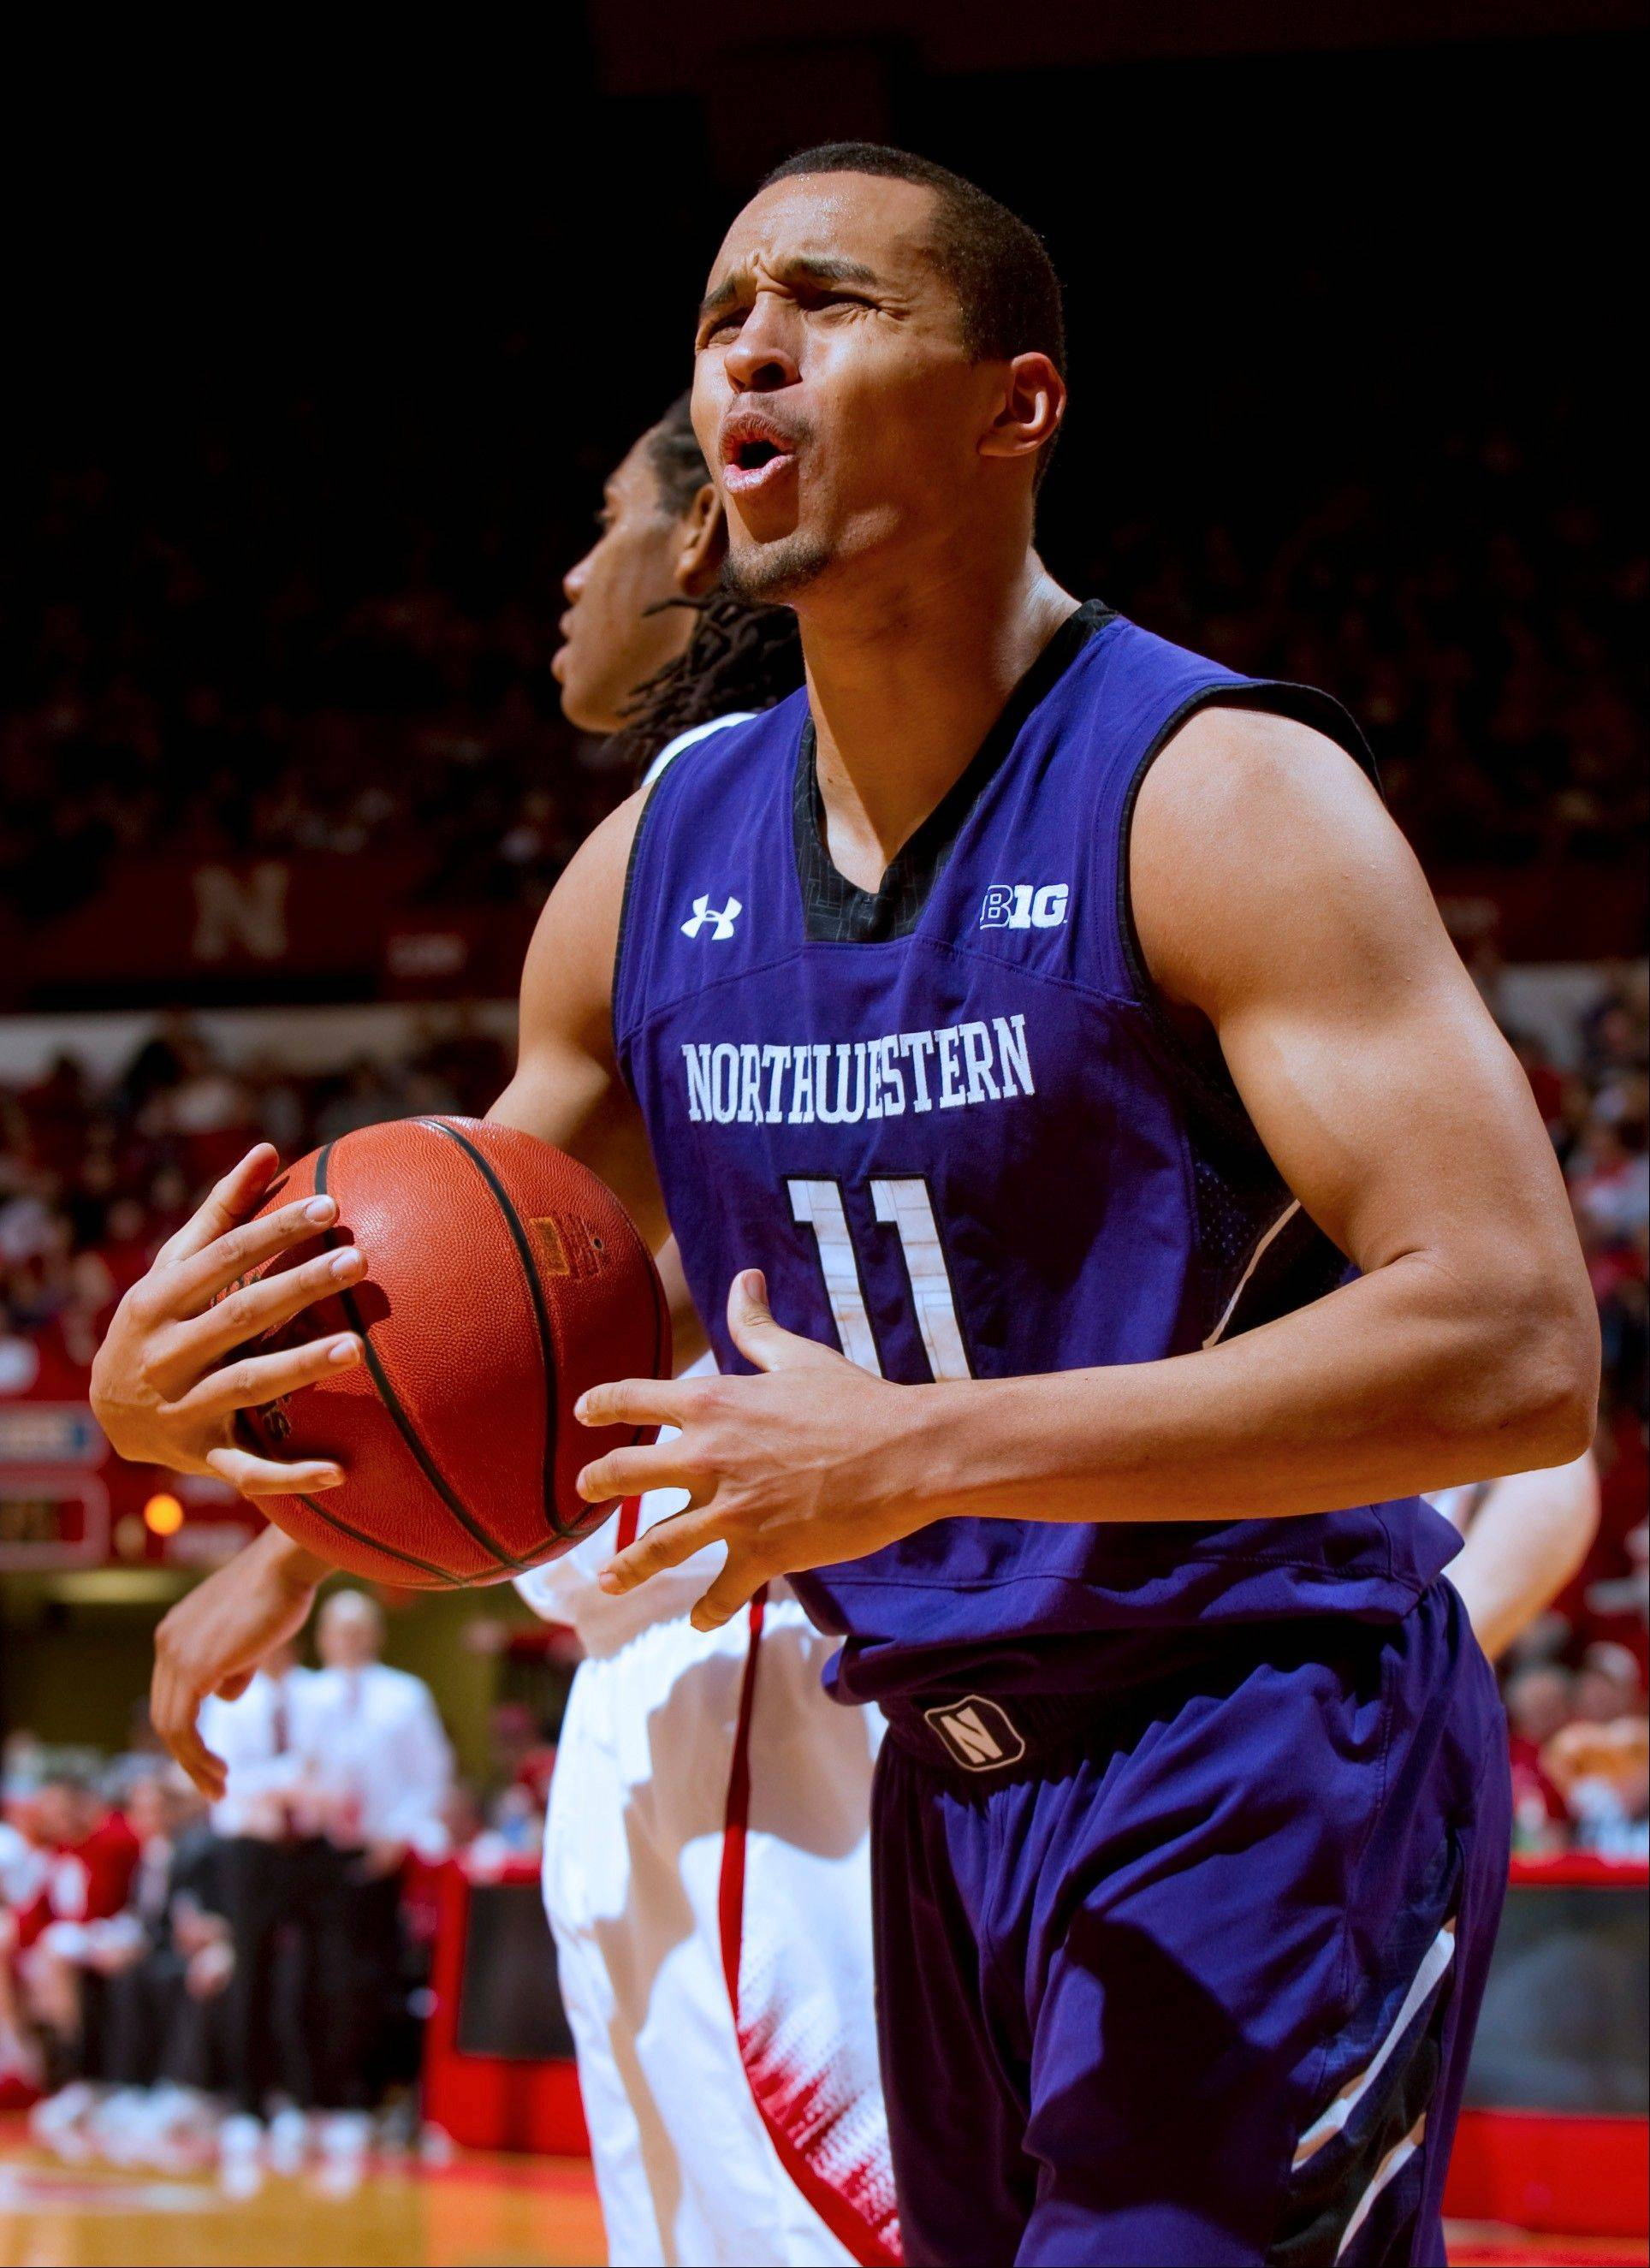 Northwestern's Reggie Hearn argues a call during the first half of his team's loss on Saturday.